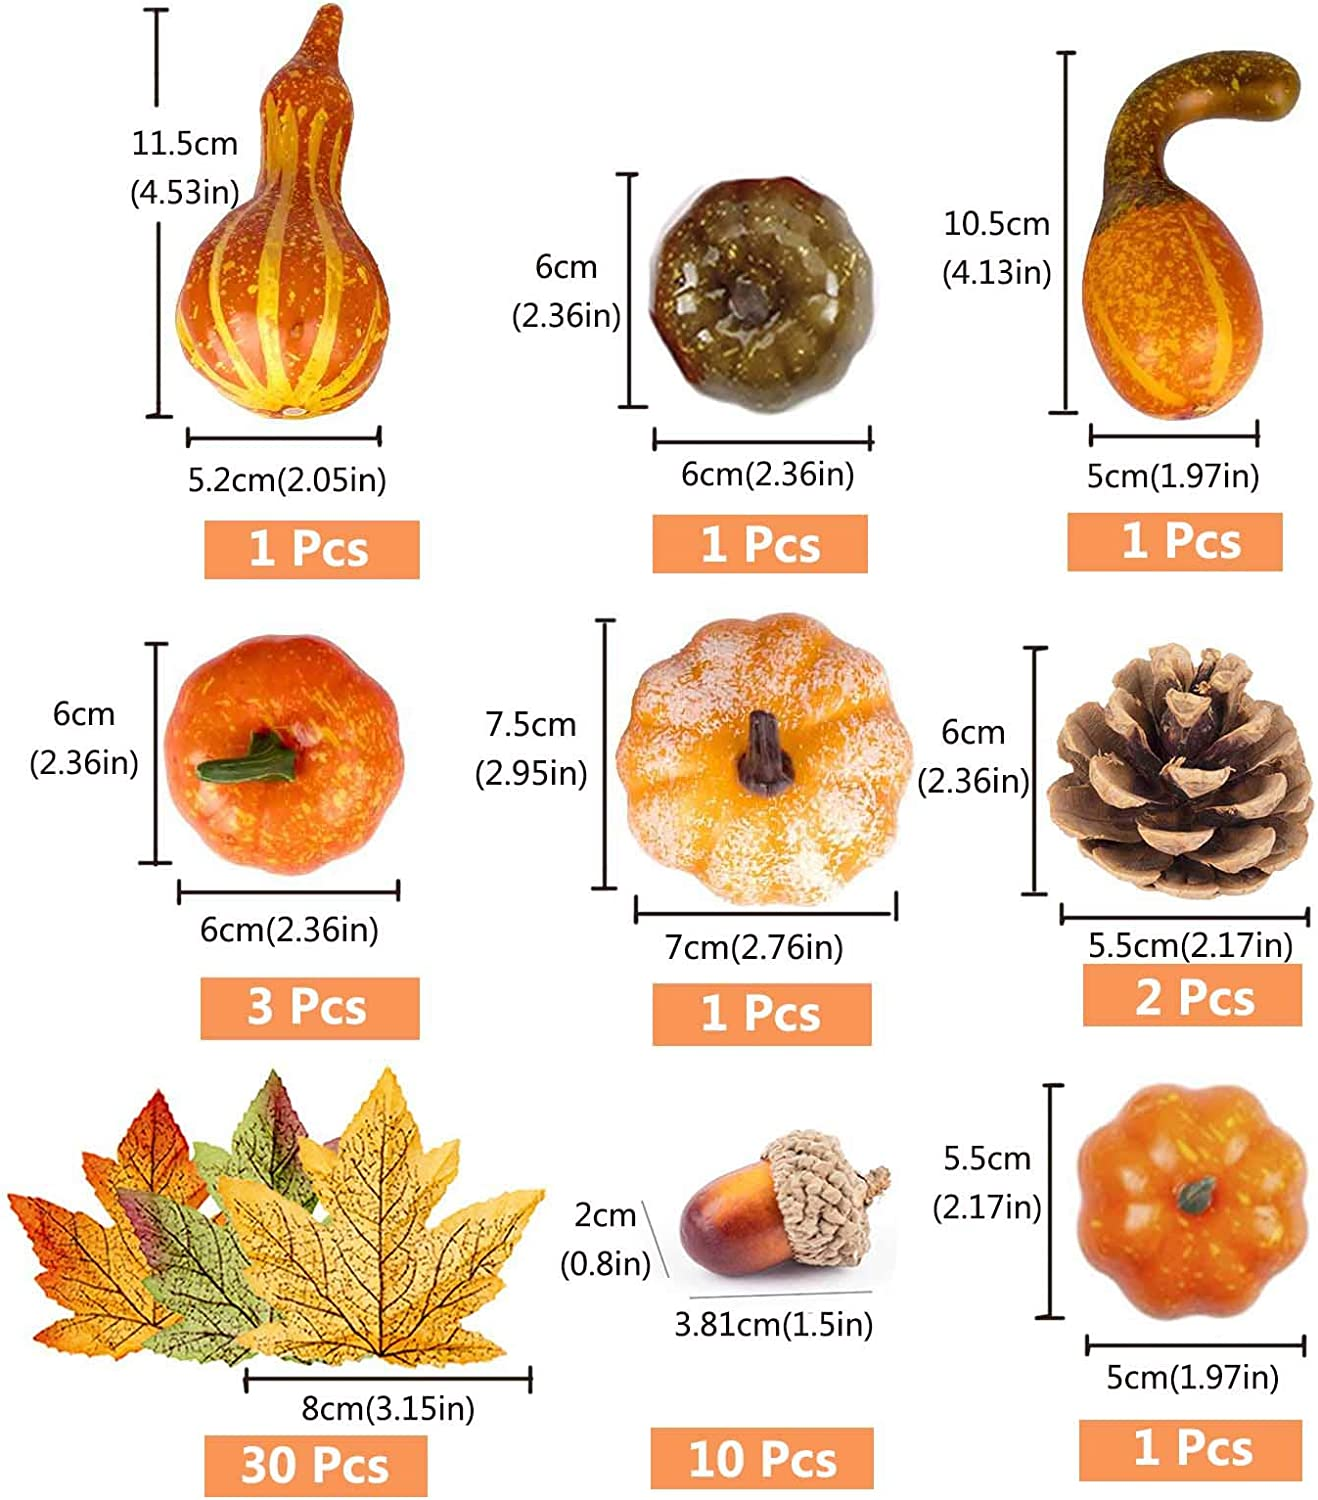 Acorns and Pine Cones for Thanksgiving Halloween Home Party Decoration CreepyParty Artificial Pumpkins Wreath Autumn Fall Harvest Set with Maple Leaves 50 Pcs